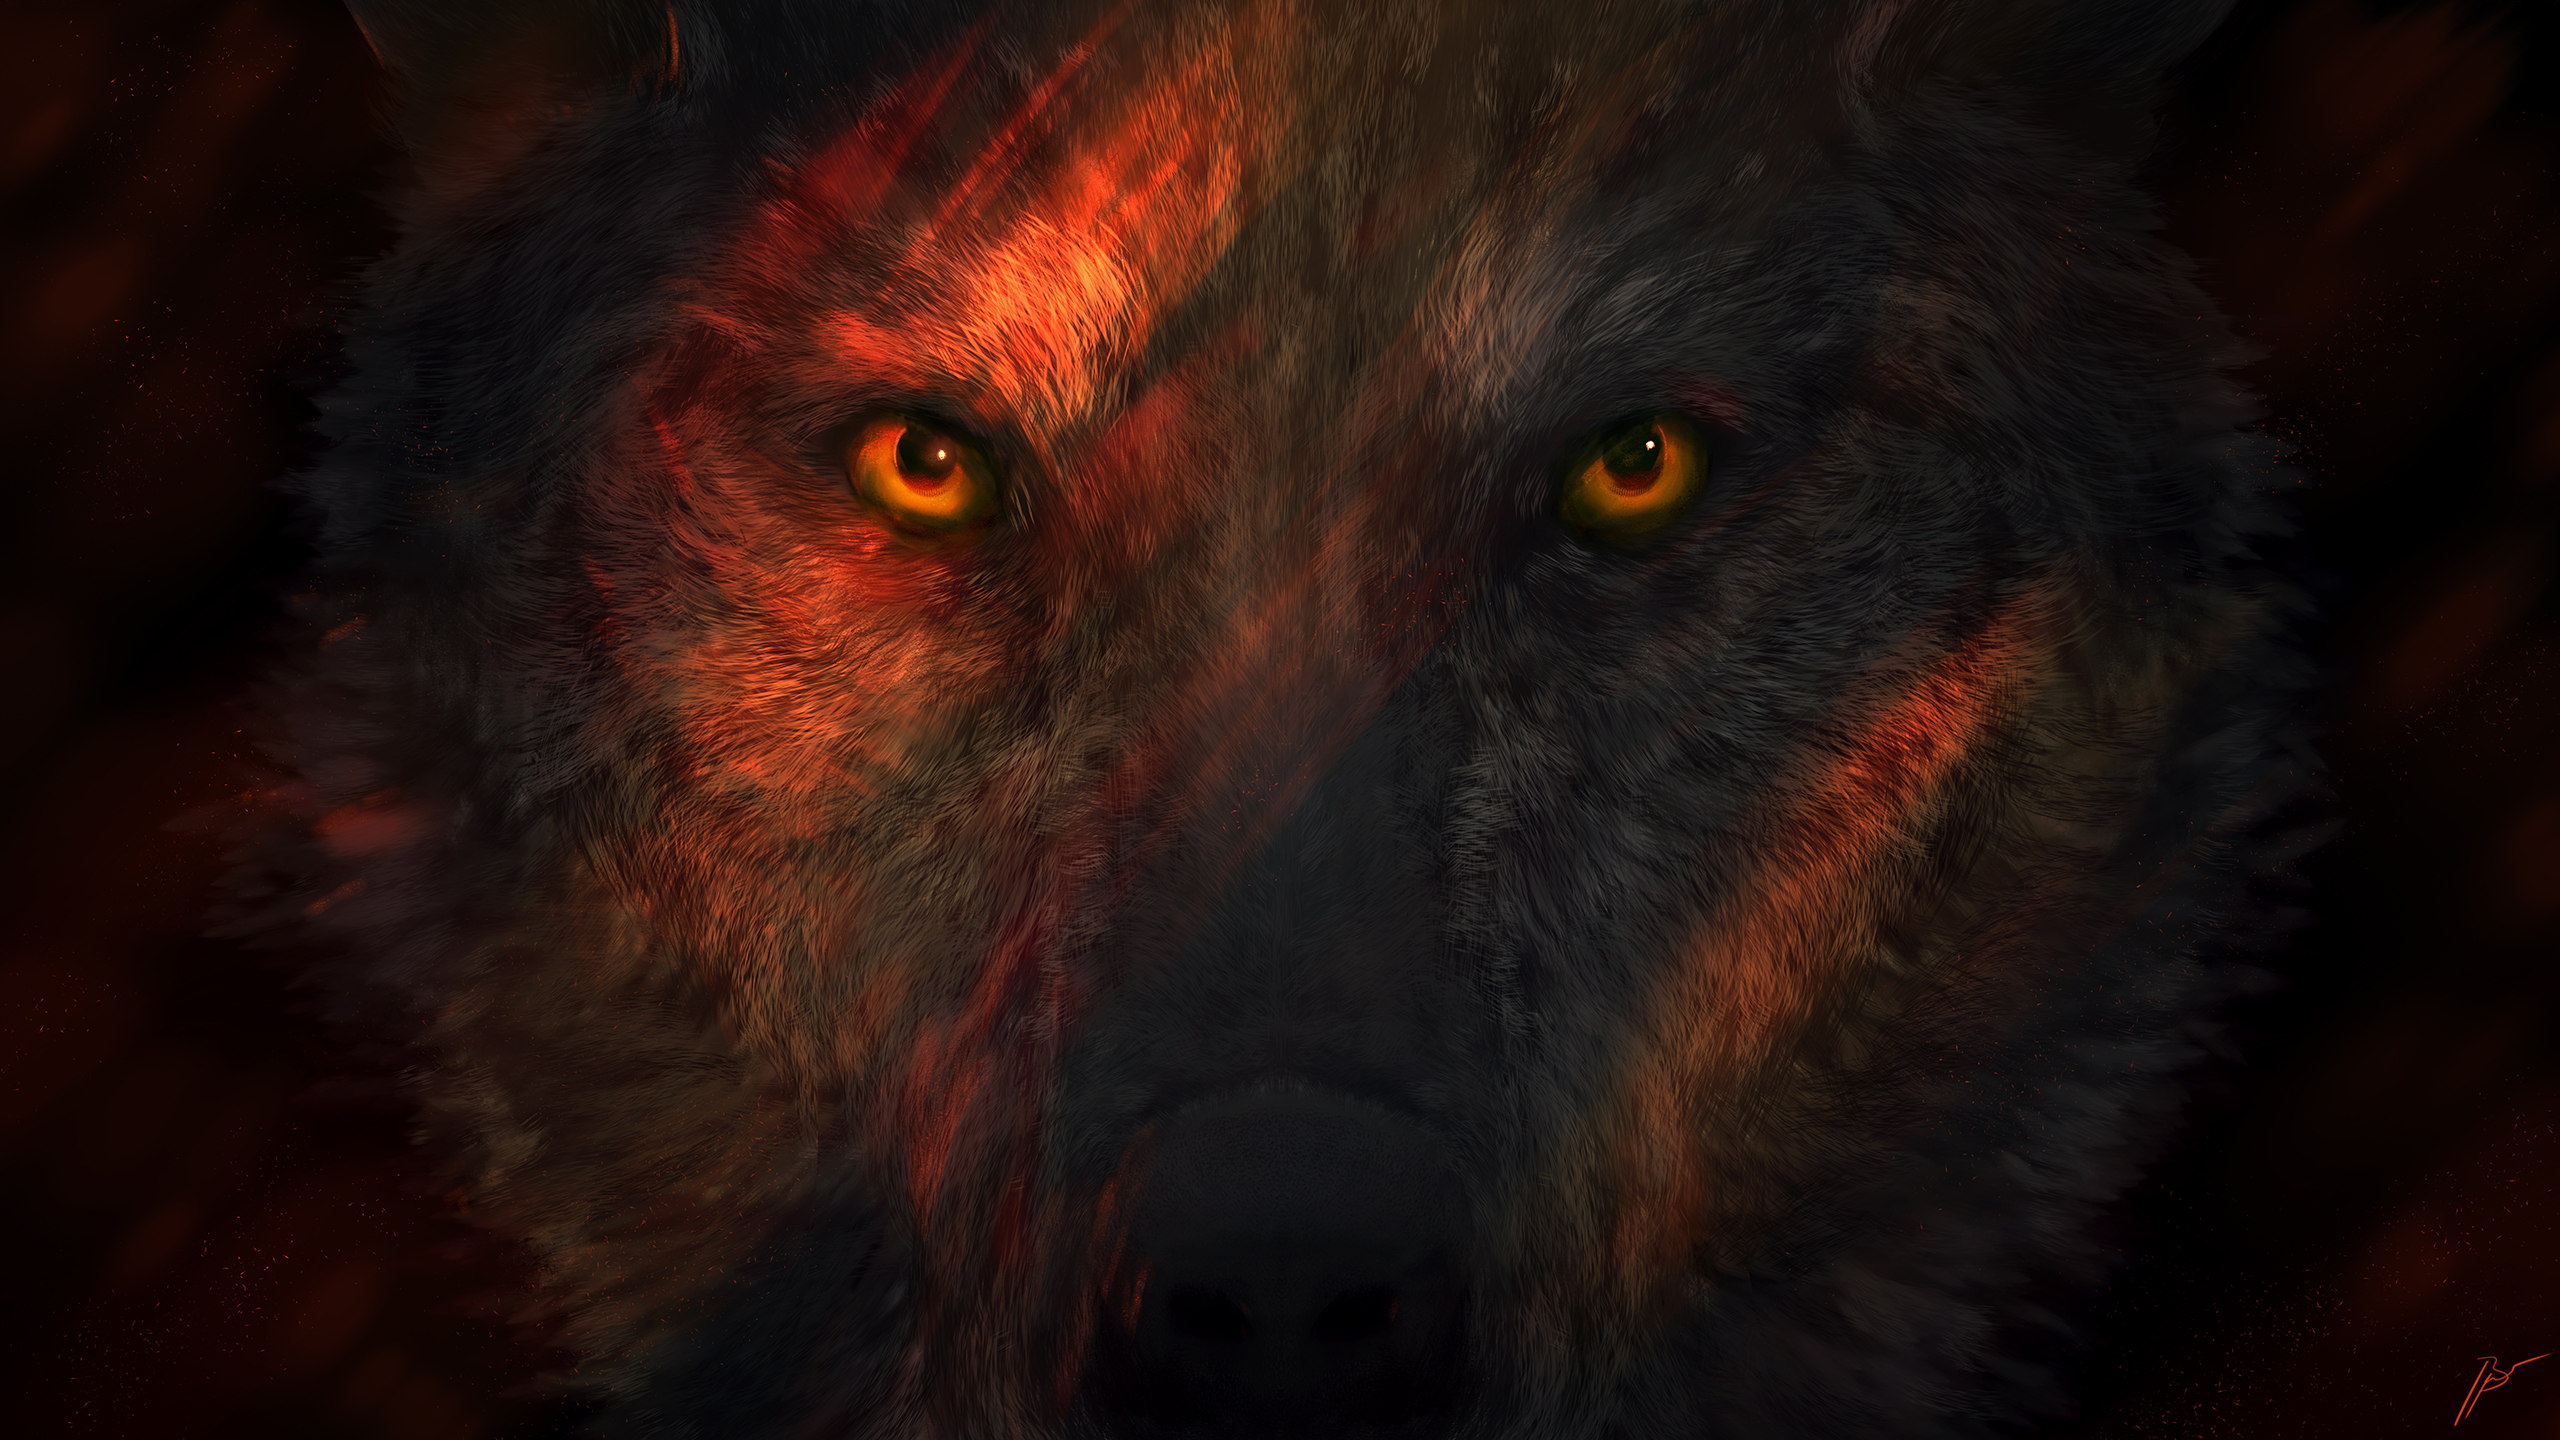 320x240 Wild Wolf Eyes Apple Iphone Ipod Touch Galaxy Ace Hd 4k Wallpapers Images Backgrounds Photos And Pictures